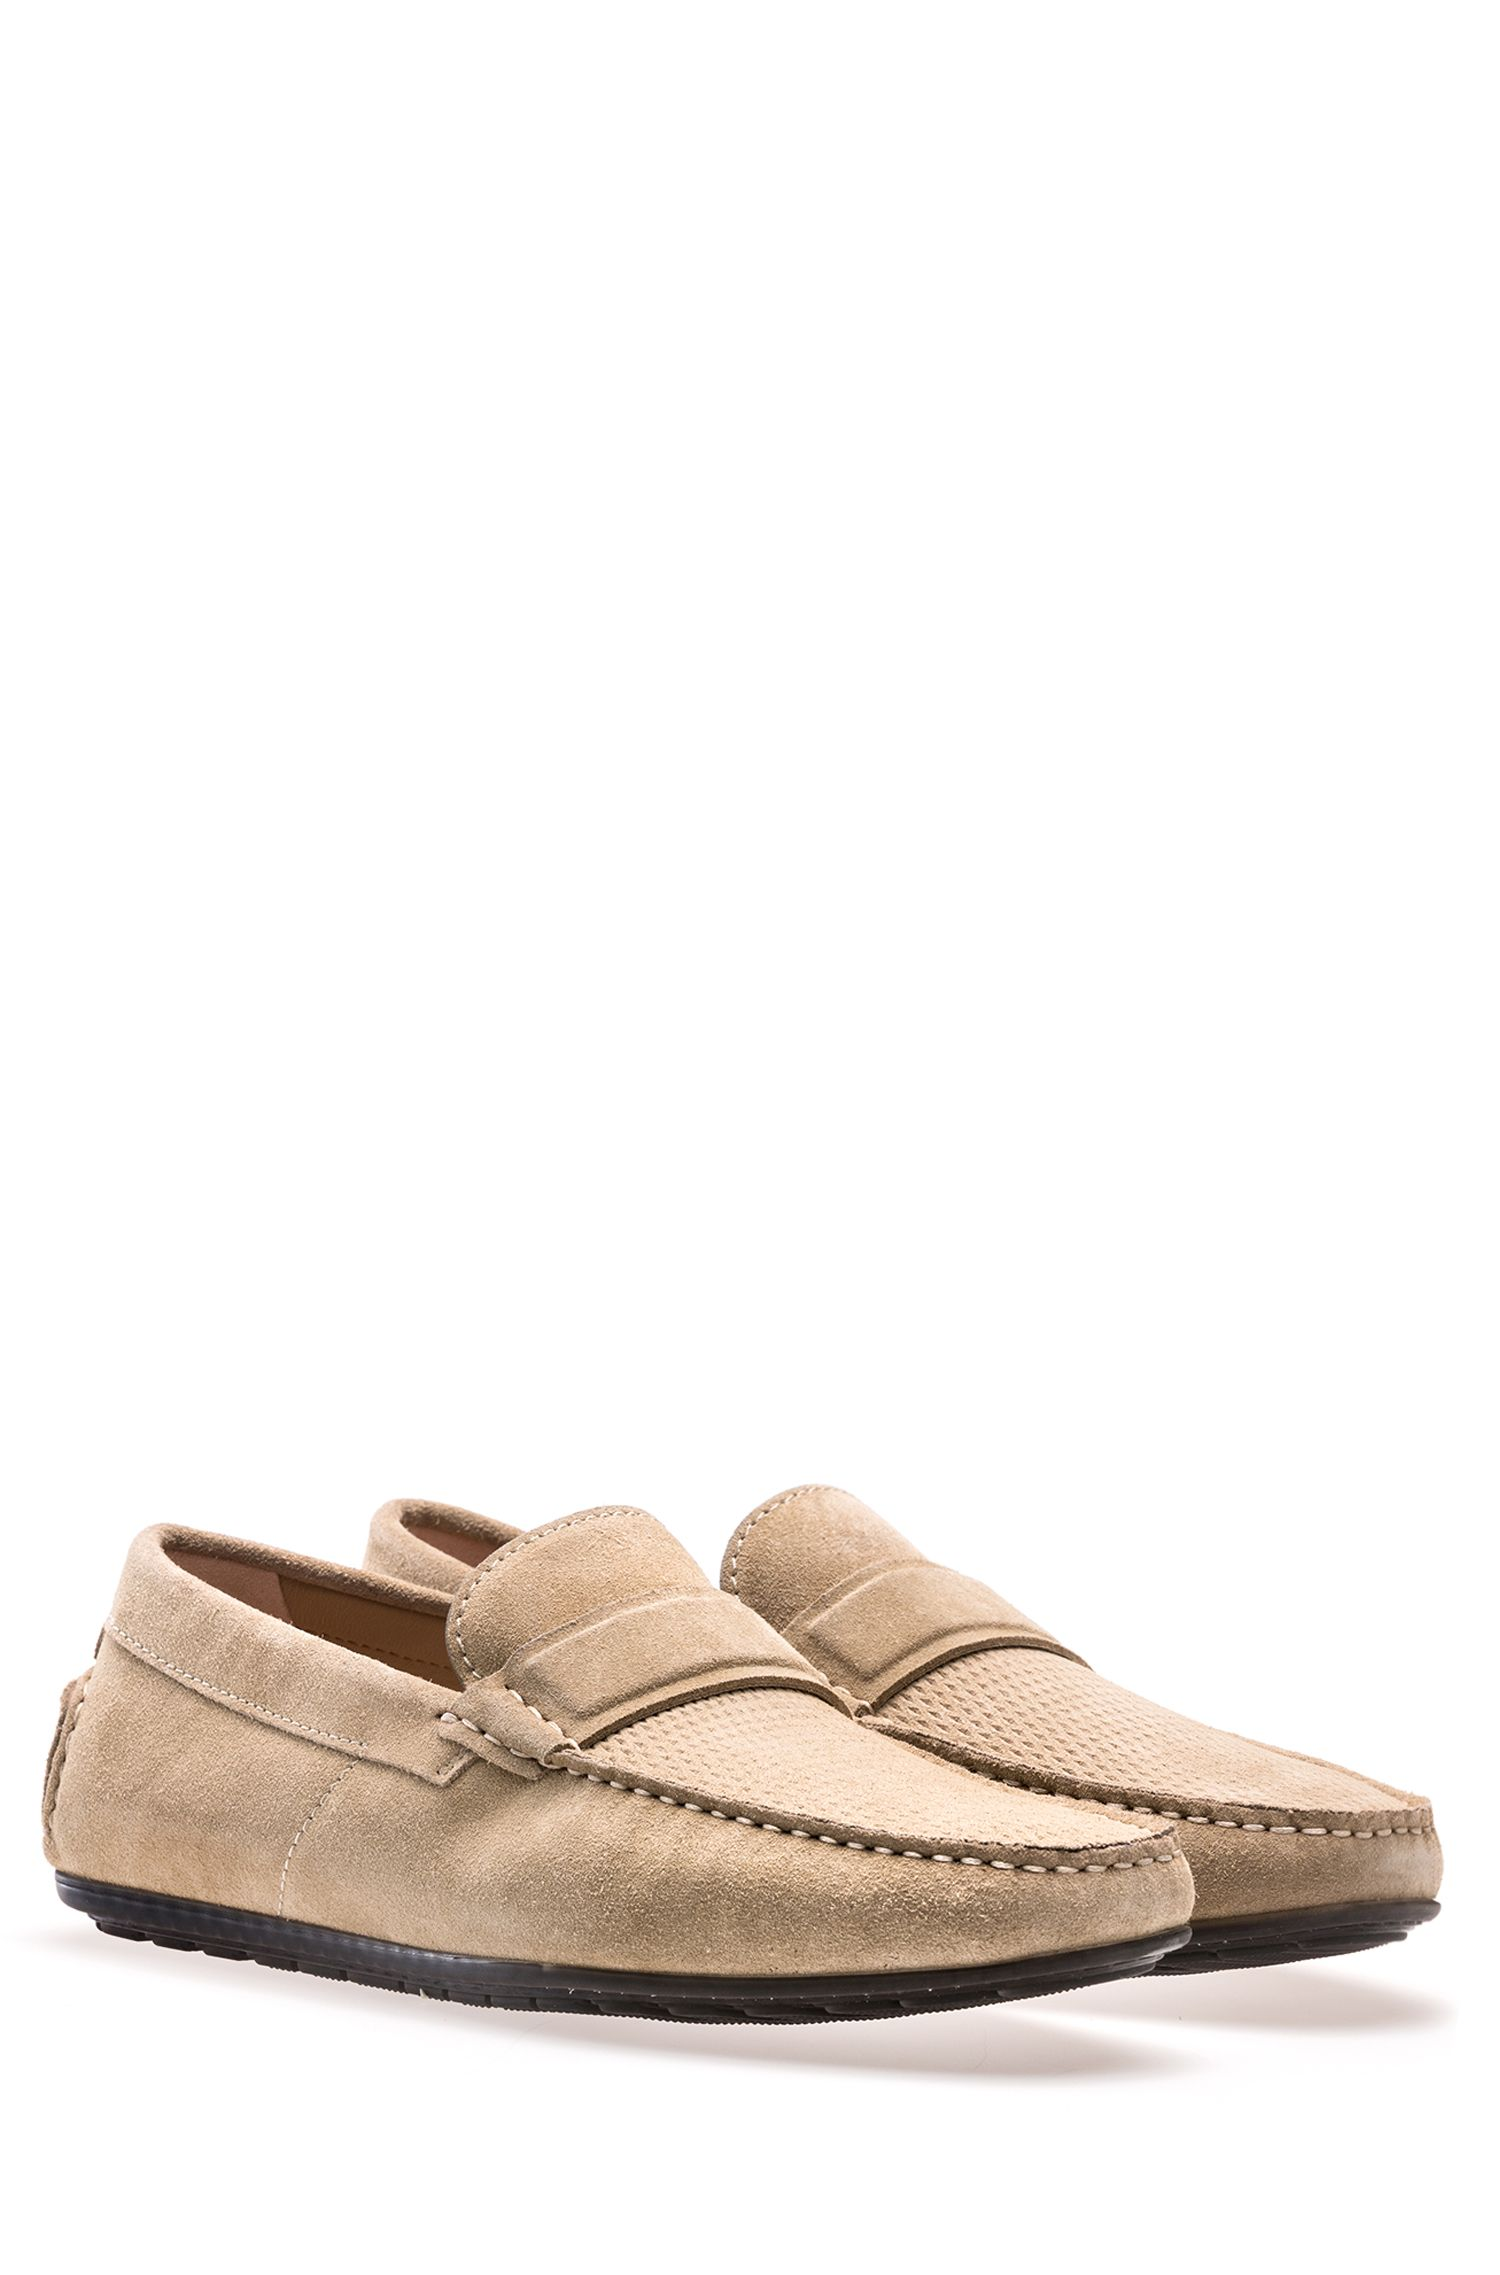 Suede moccasins with textured vamp